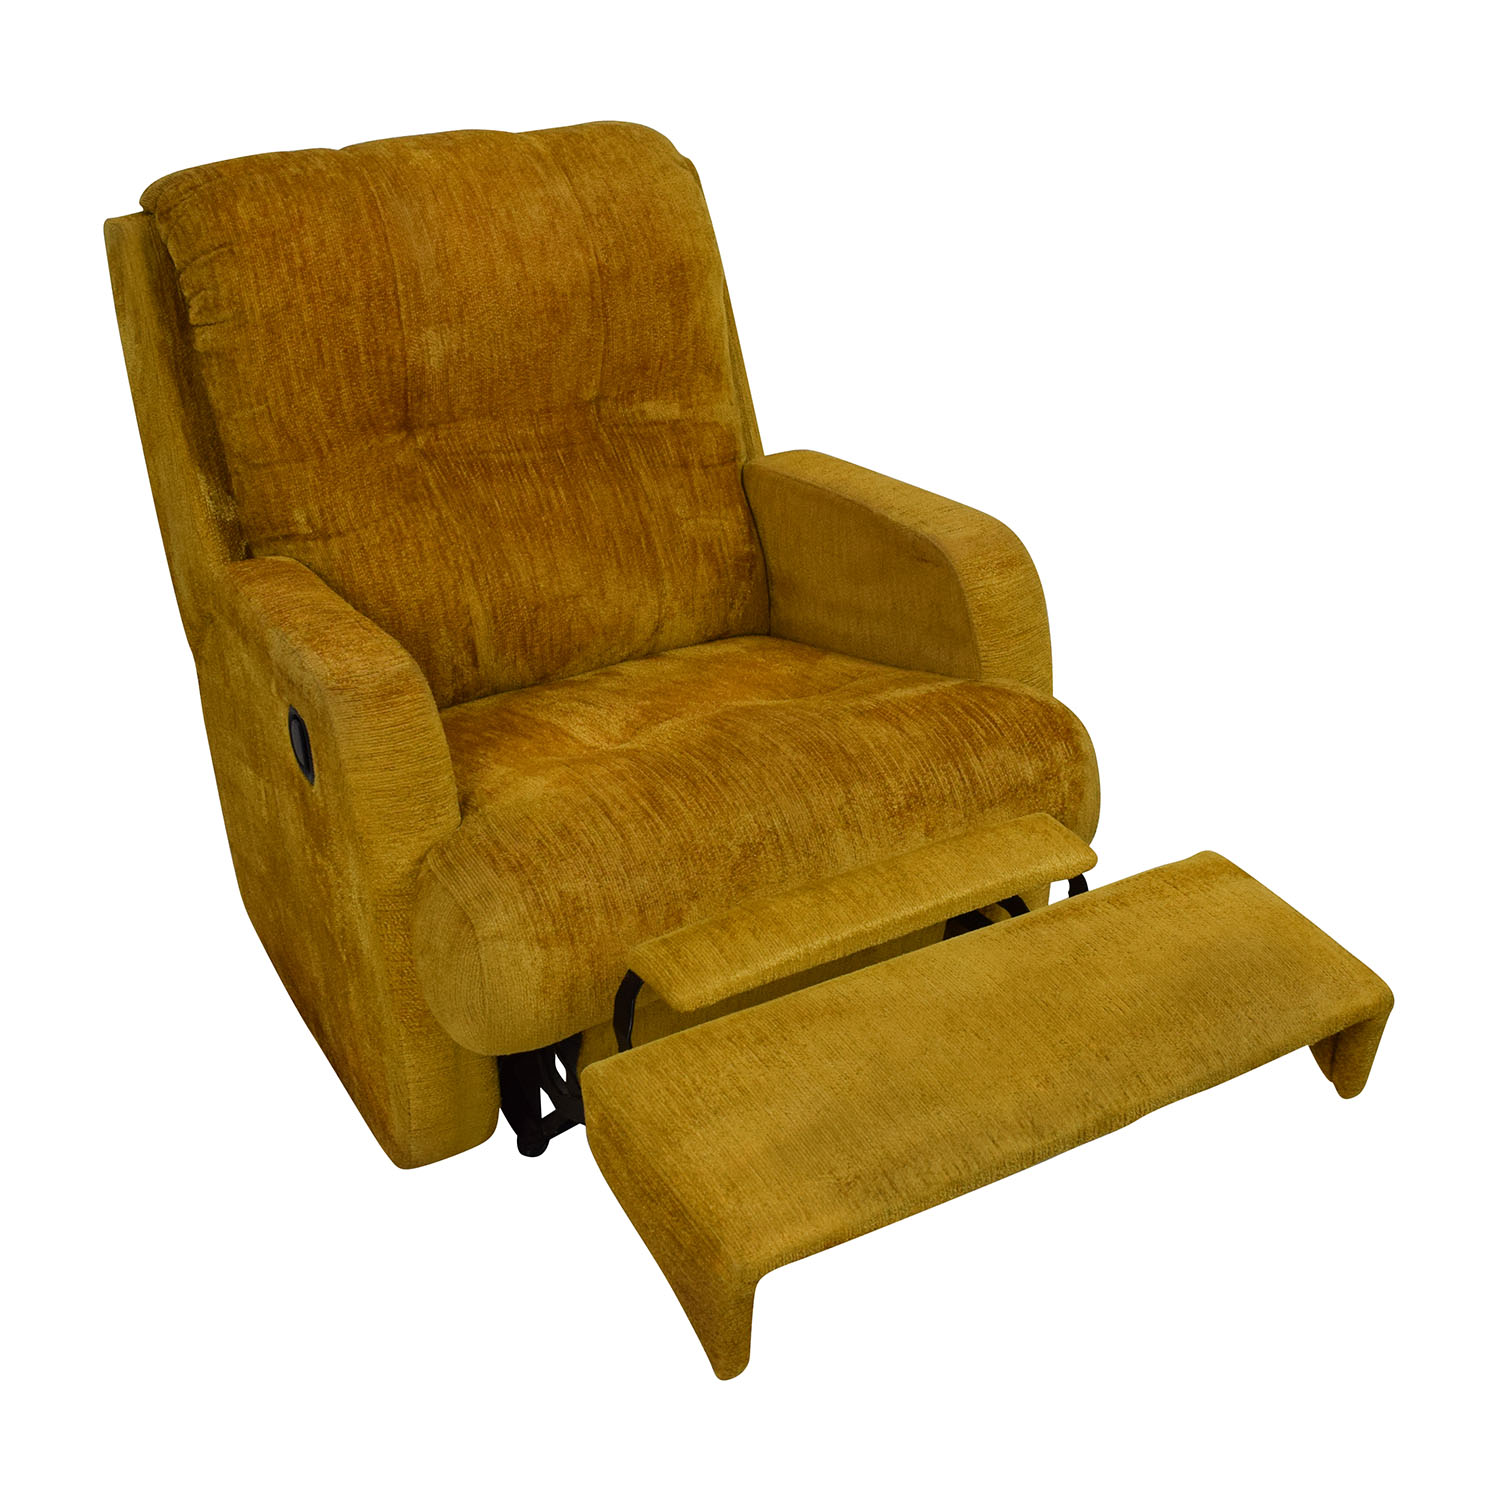 75 OFF  Unknown Brand Yellow Recliner Chair  Chairs